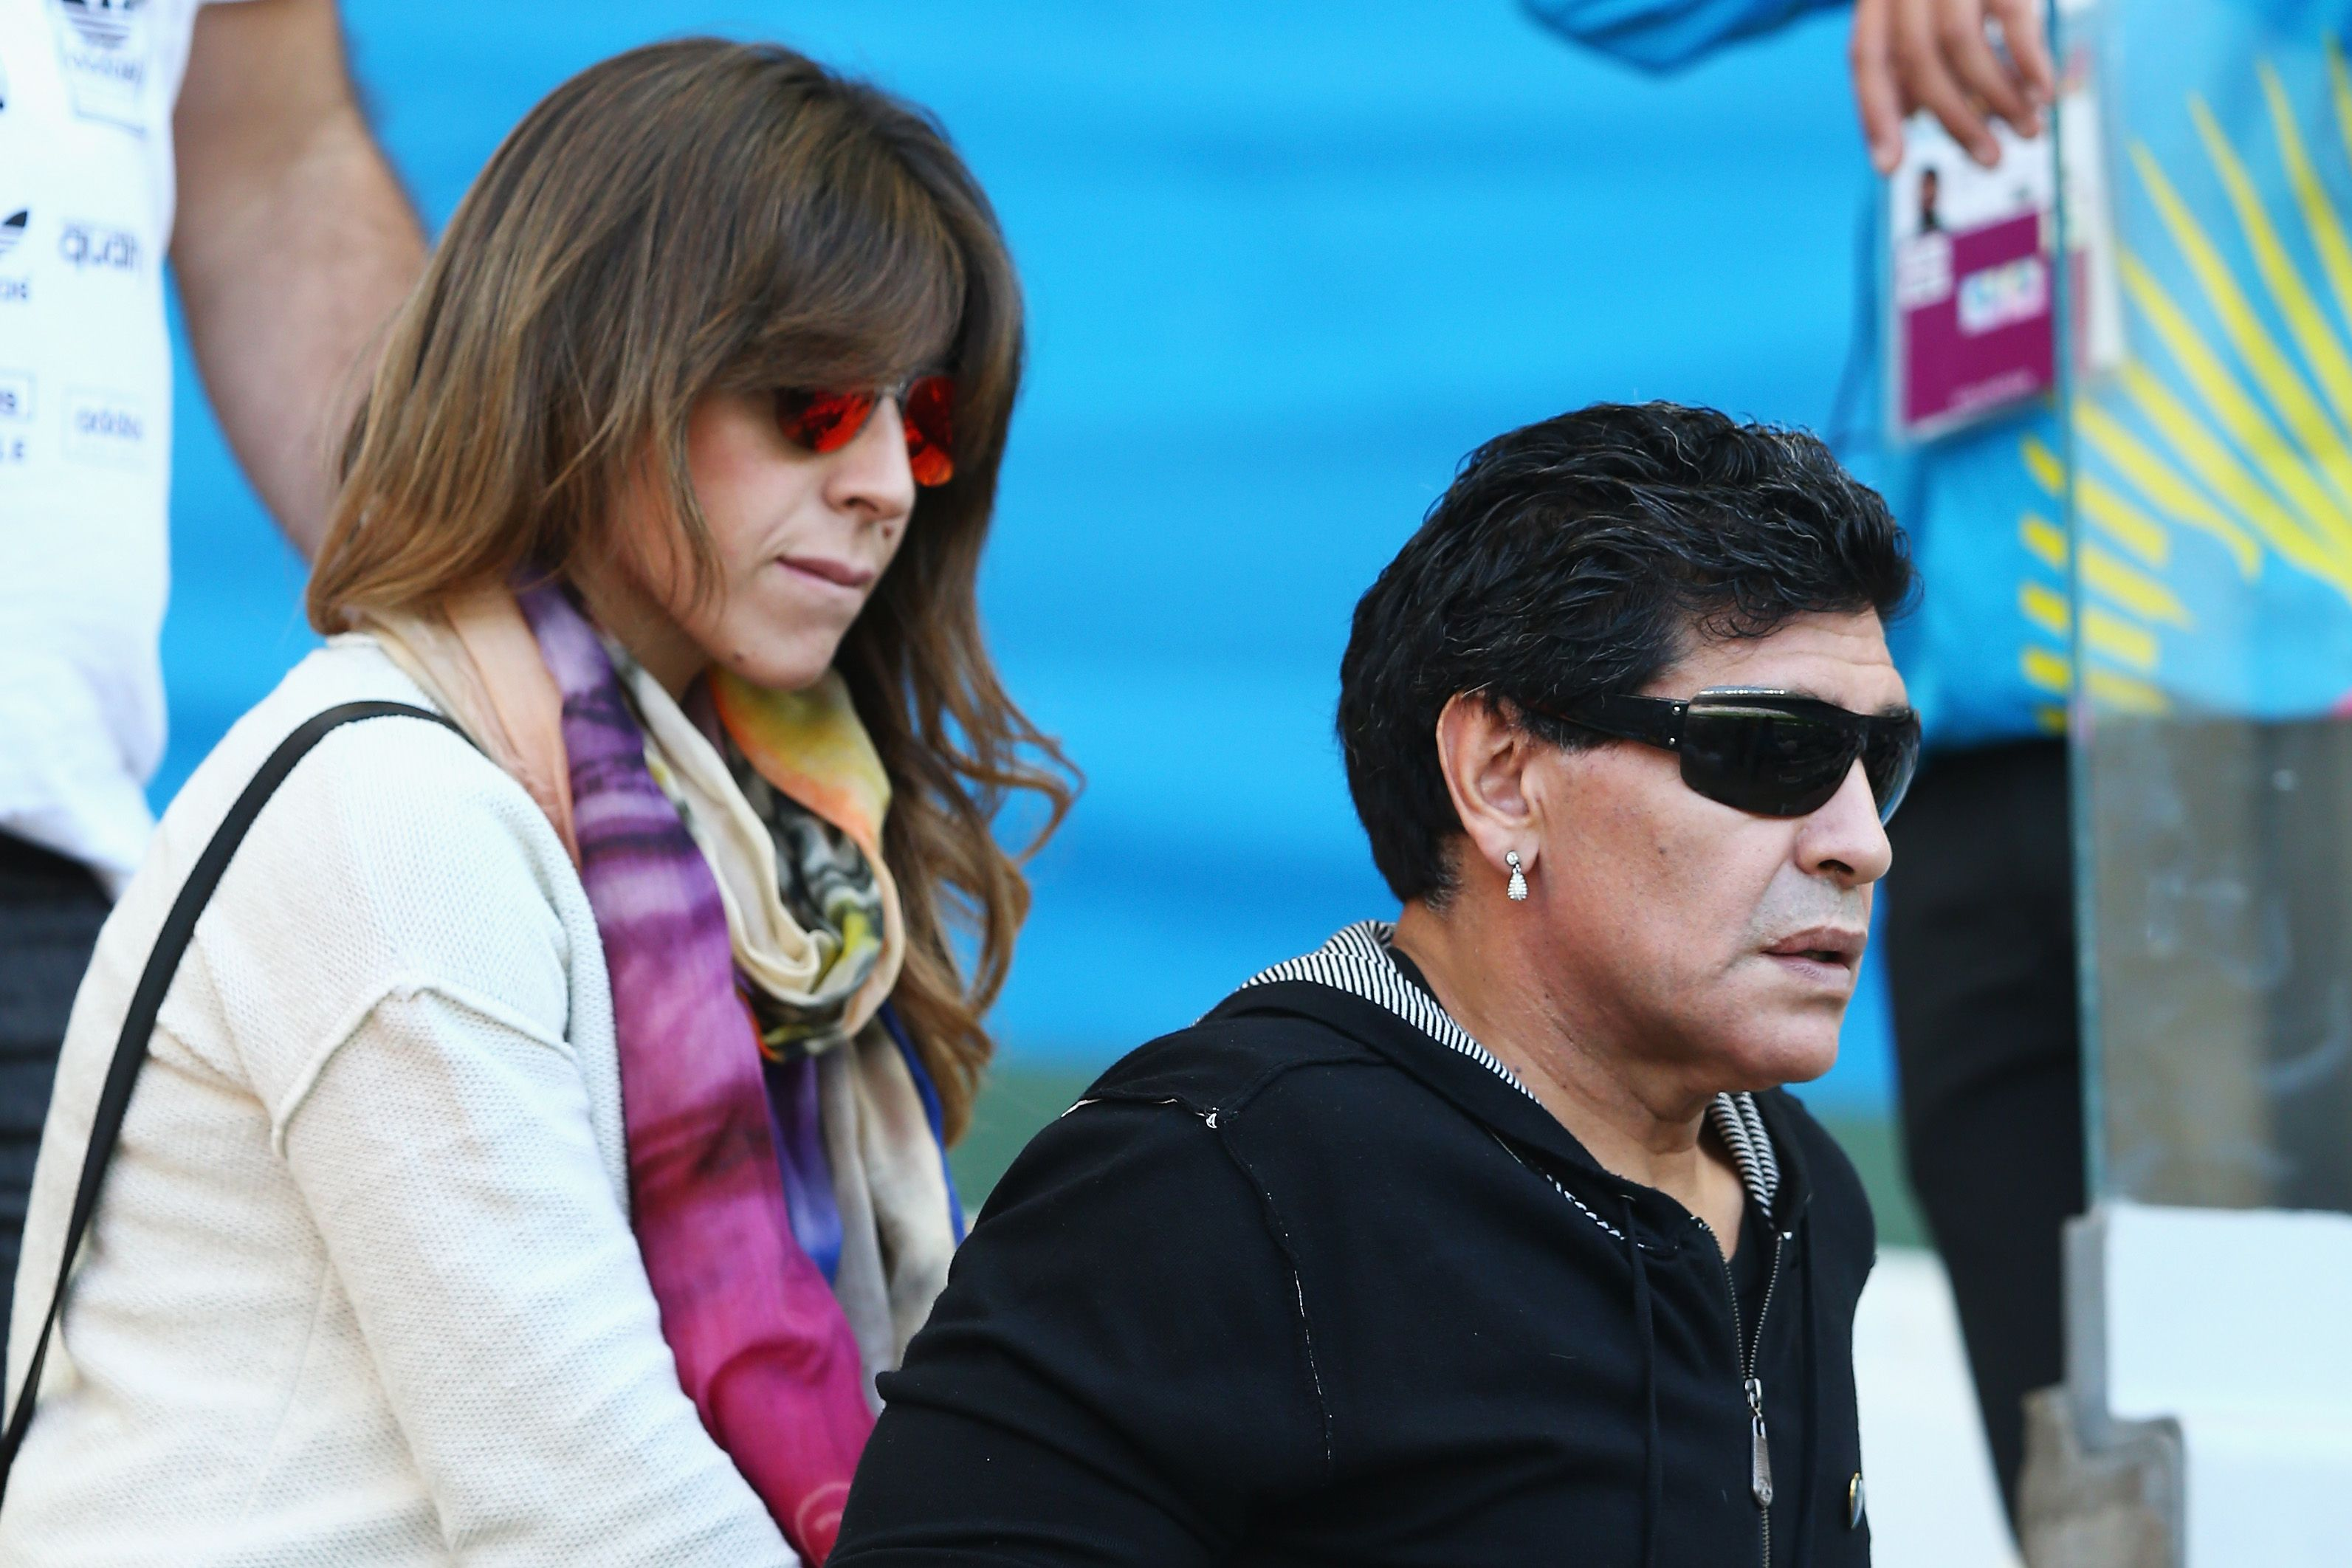 Giannina Maradona, le 21 juin 2014 à Belo Horizonte, au Brésil. | Photo : Getty Images